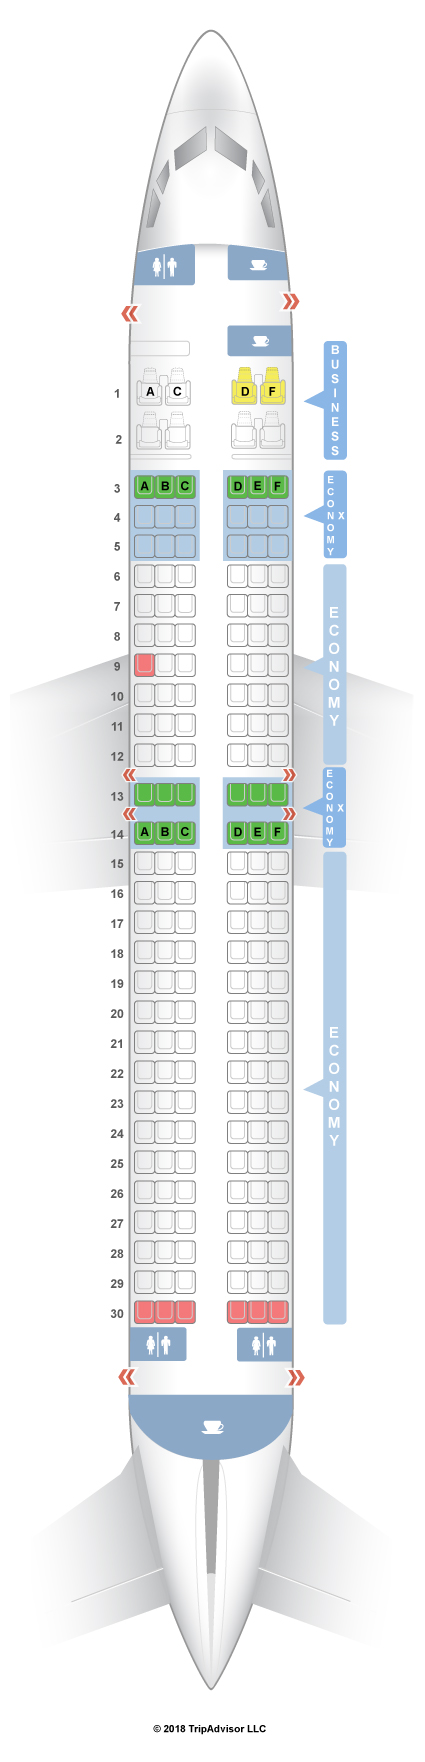 737 800 Seat Map SeatGuru Seat Map Virgin Australia